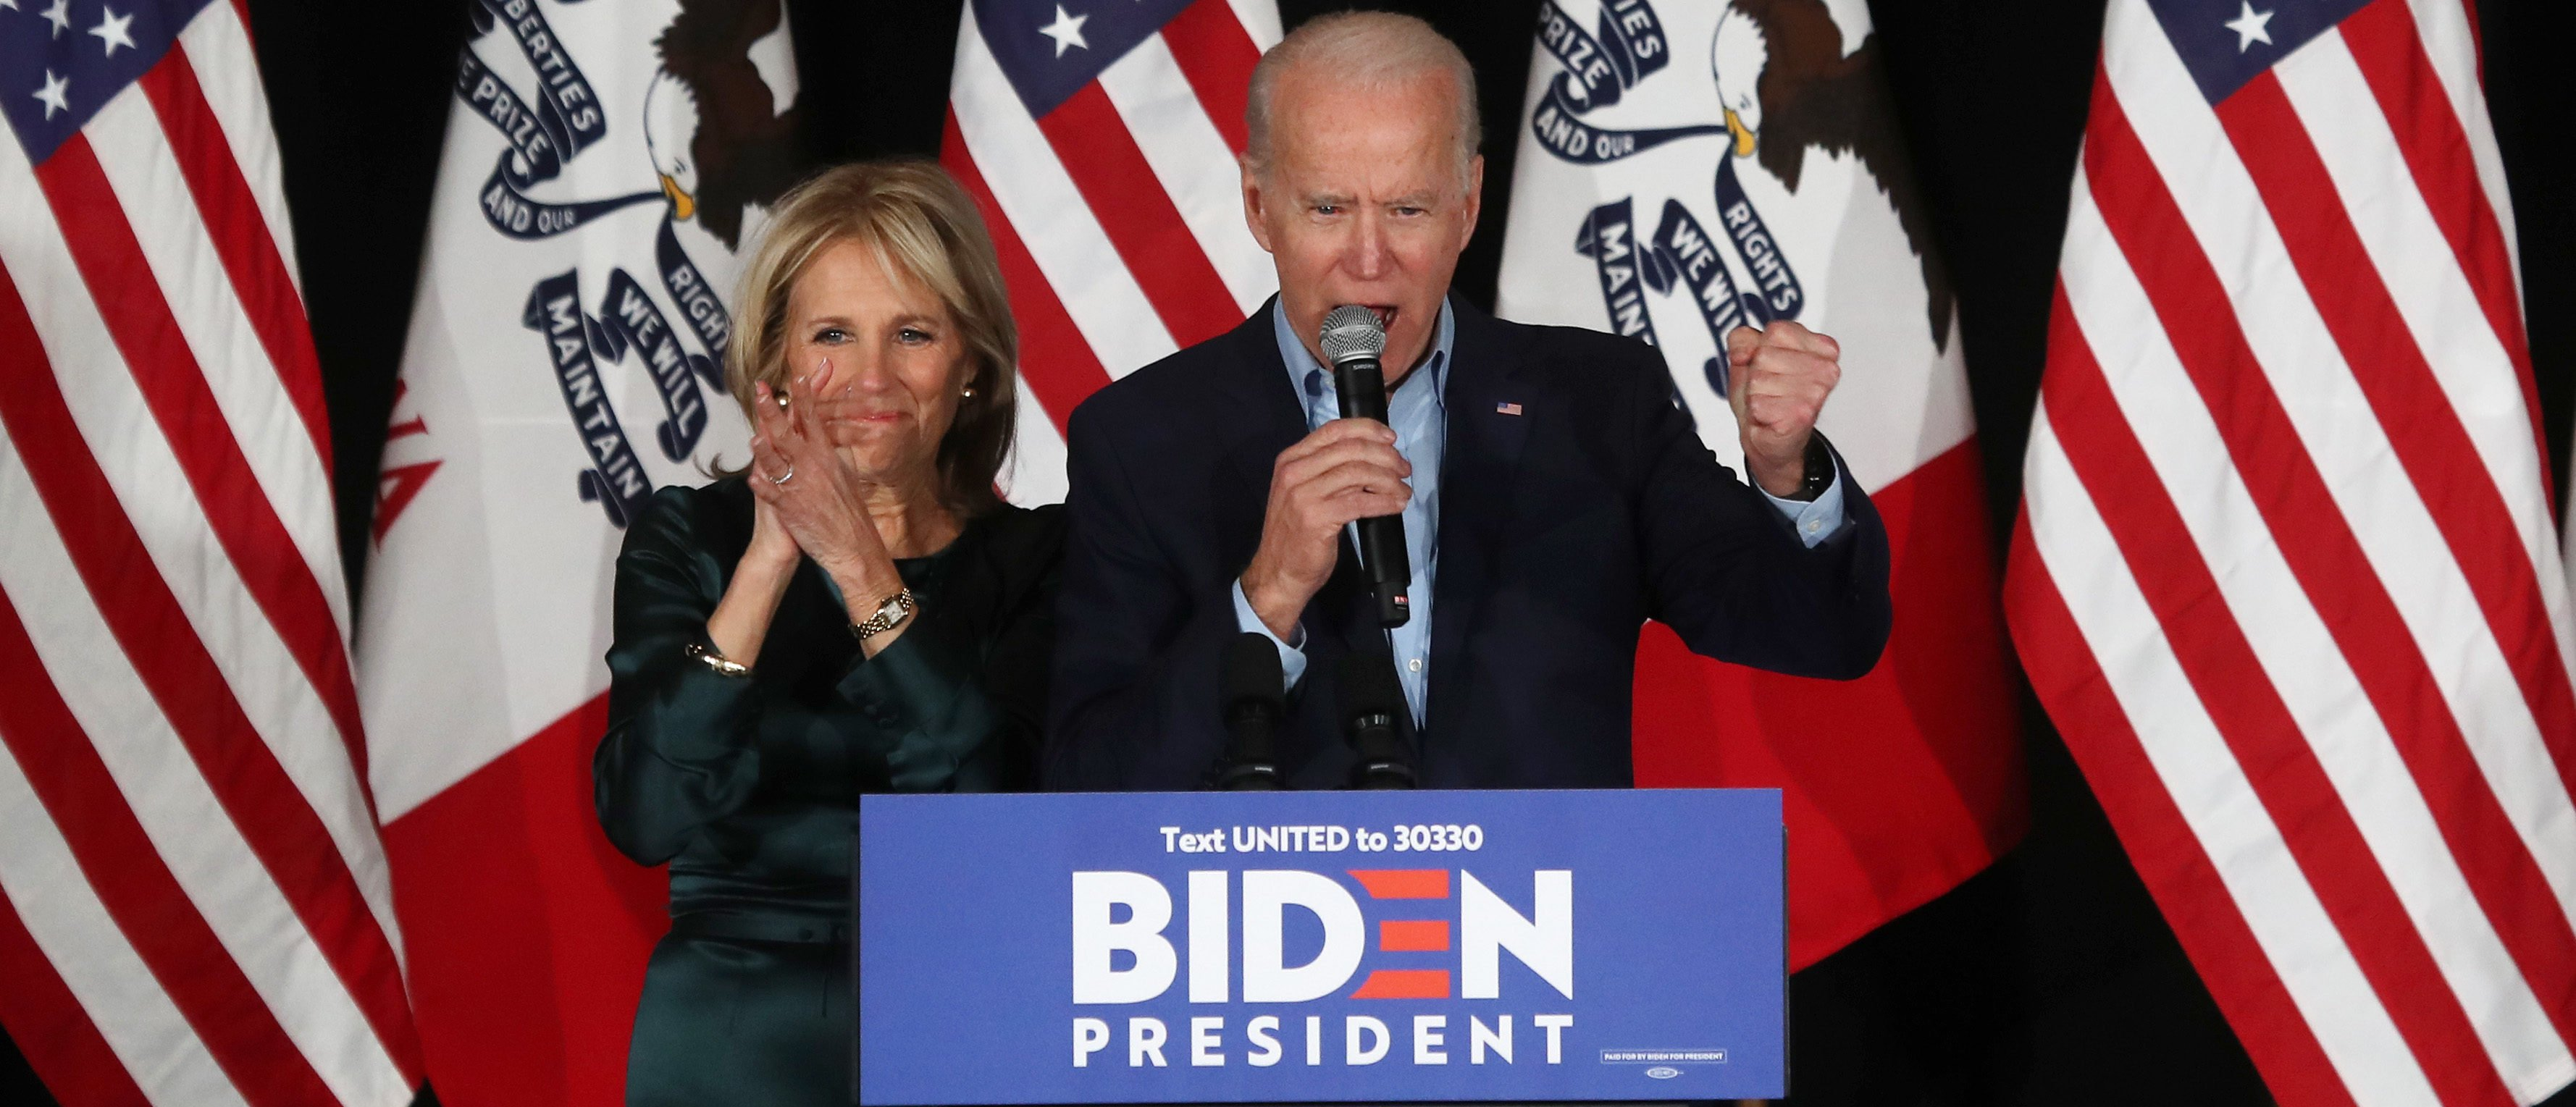 DES MOINES, IOWA - FEBRUARY 03: Democratic presidential candidate former Vice President Joe Biden and wife Dr. Jill Biden greet supporters at a caucus night watch party on February 03, 2020 in Des Moines, Iowa. Iowa is the first contest in the 2020 presidential nominating process with the candidates then moving on to New Hampshire. (Photo by Justin Sullivan/Getty Images)